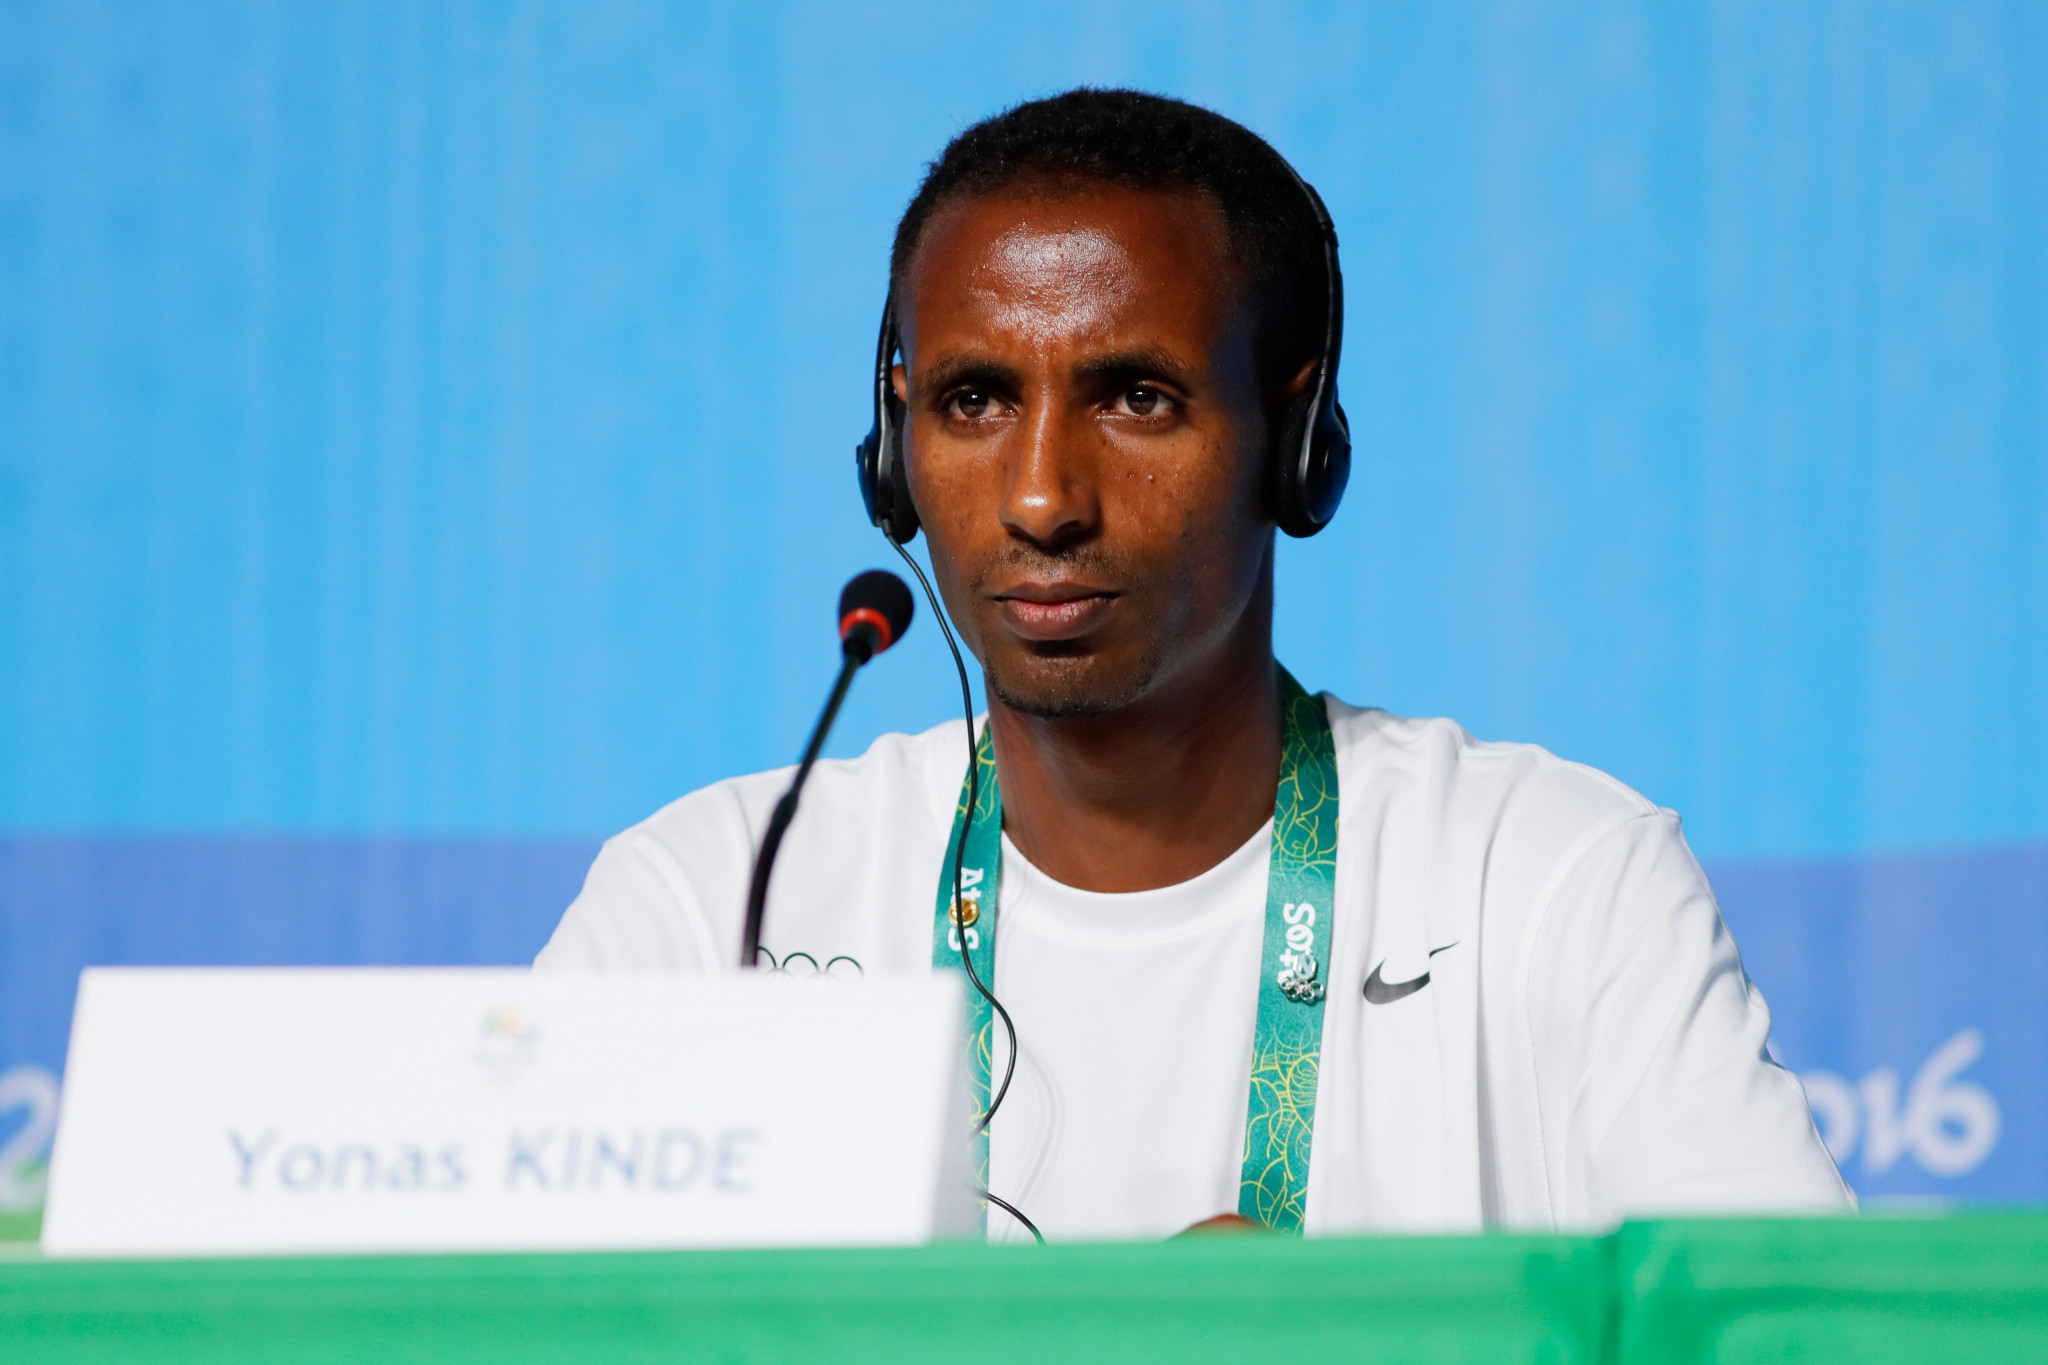 Yonas Kinde has described the Olympic Refugee Team as a